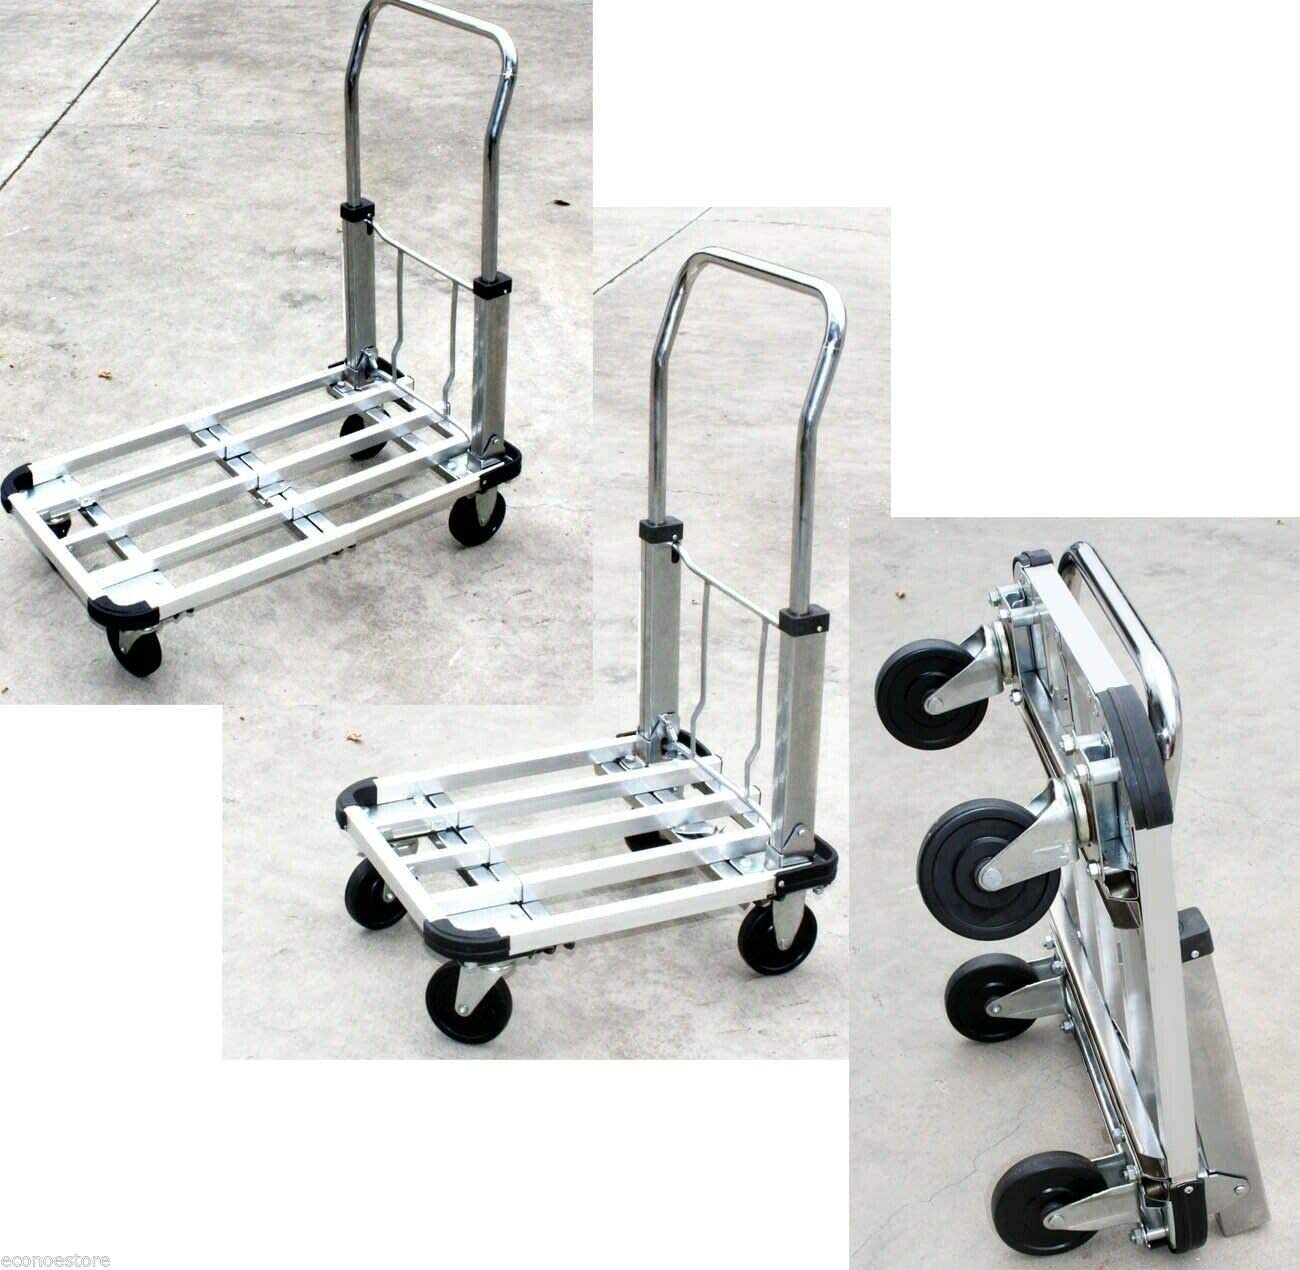 EXTENDABLE COLLAPSIBLE ALUMINUM Outlet SALE PLATFORM HAND DOLLY Fresno Mall S CART TRUCK